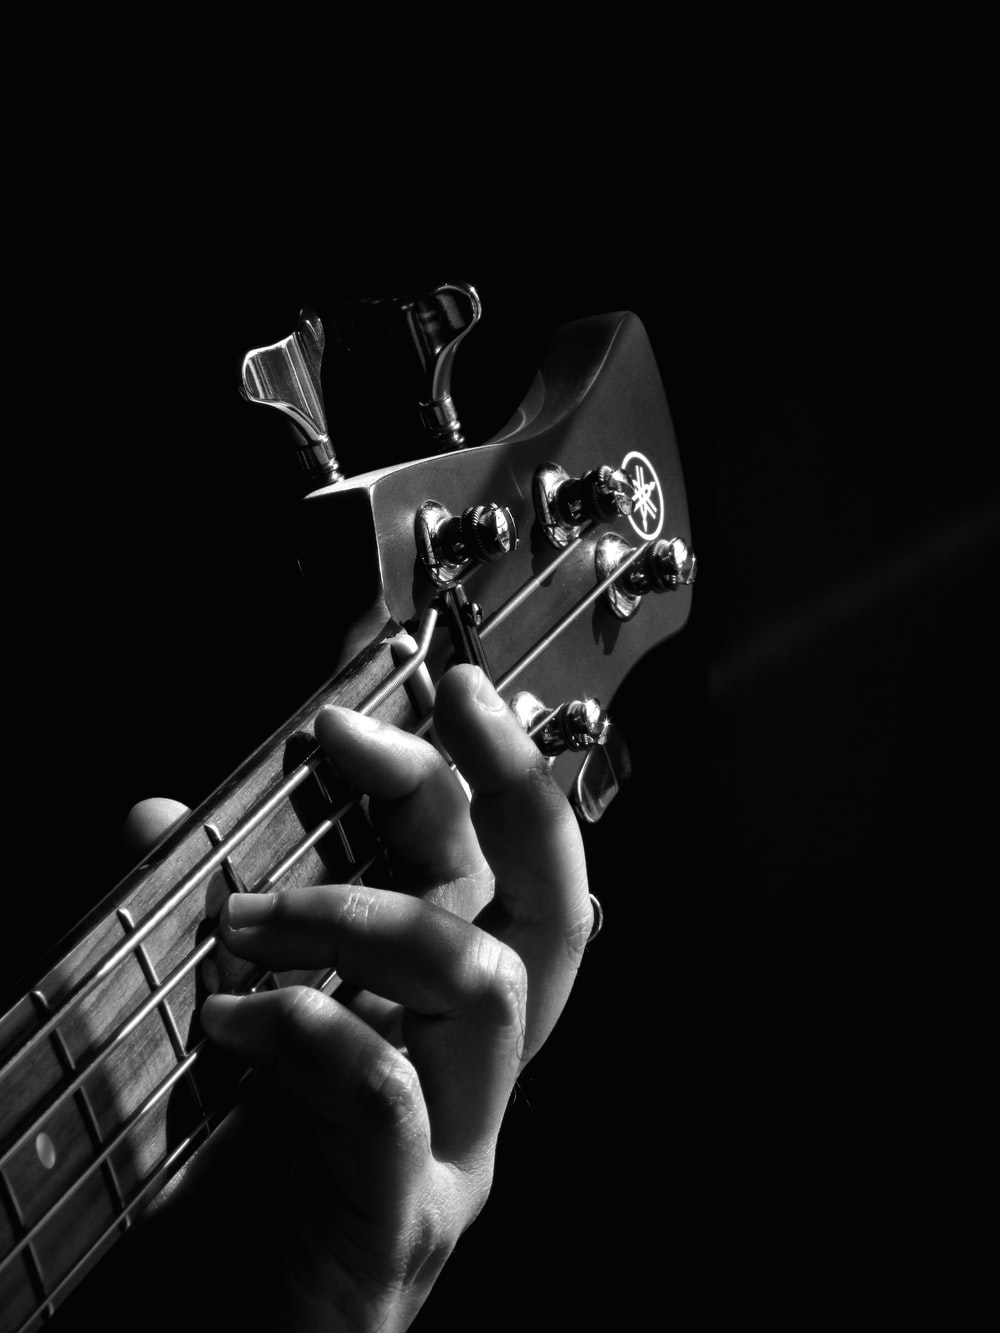 person playing guitar grayscale photo